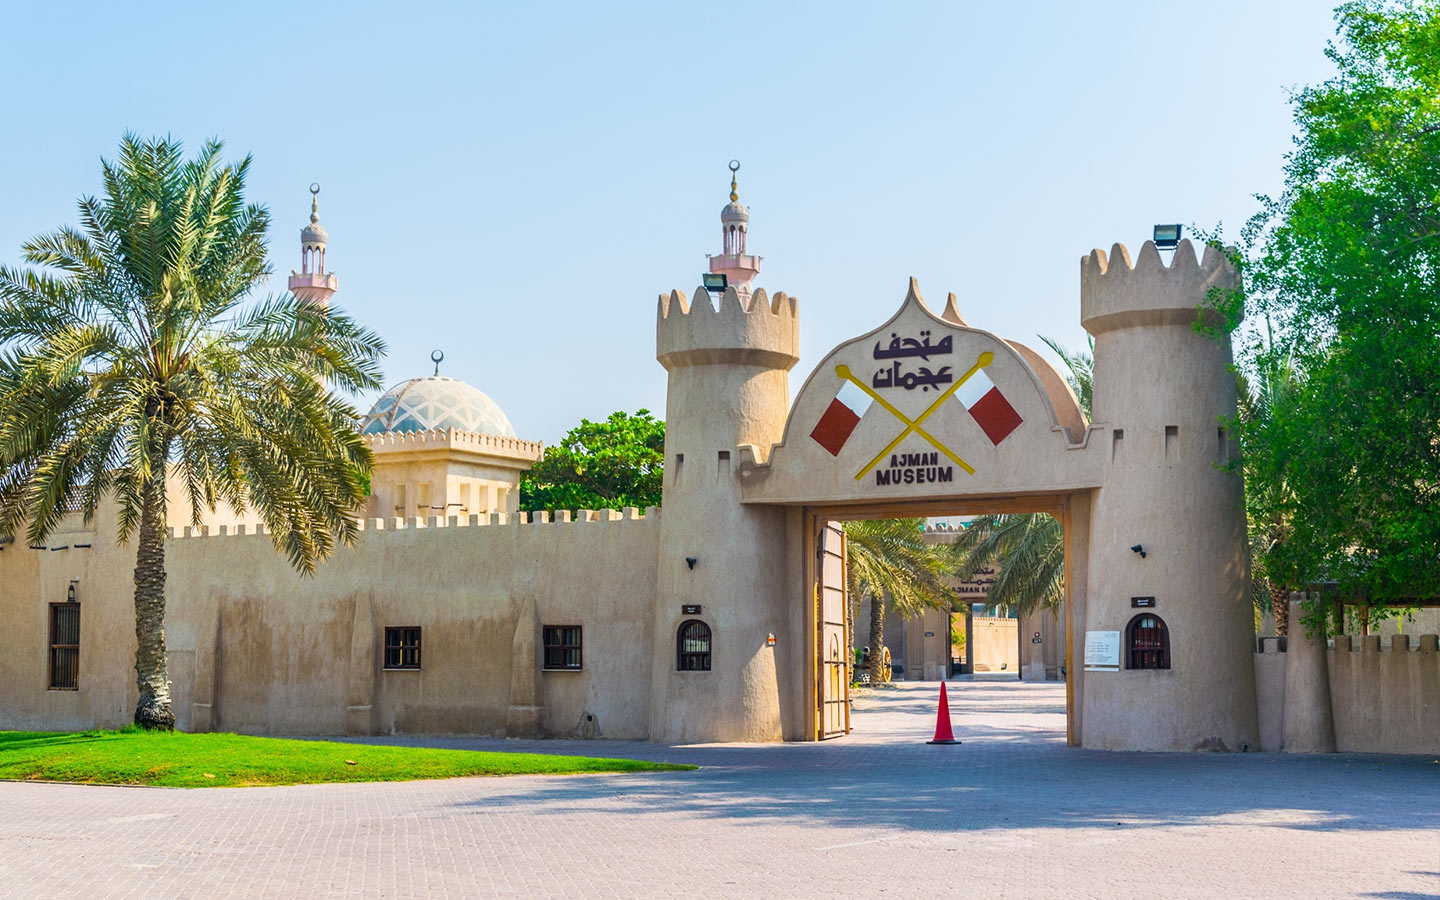 Al Zahra is close to the Ajman Museum and a popular area to live in Ajman